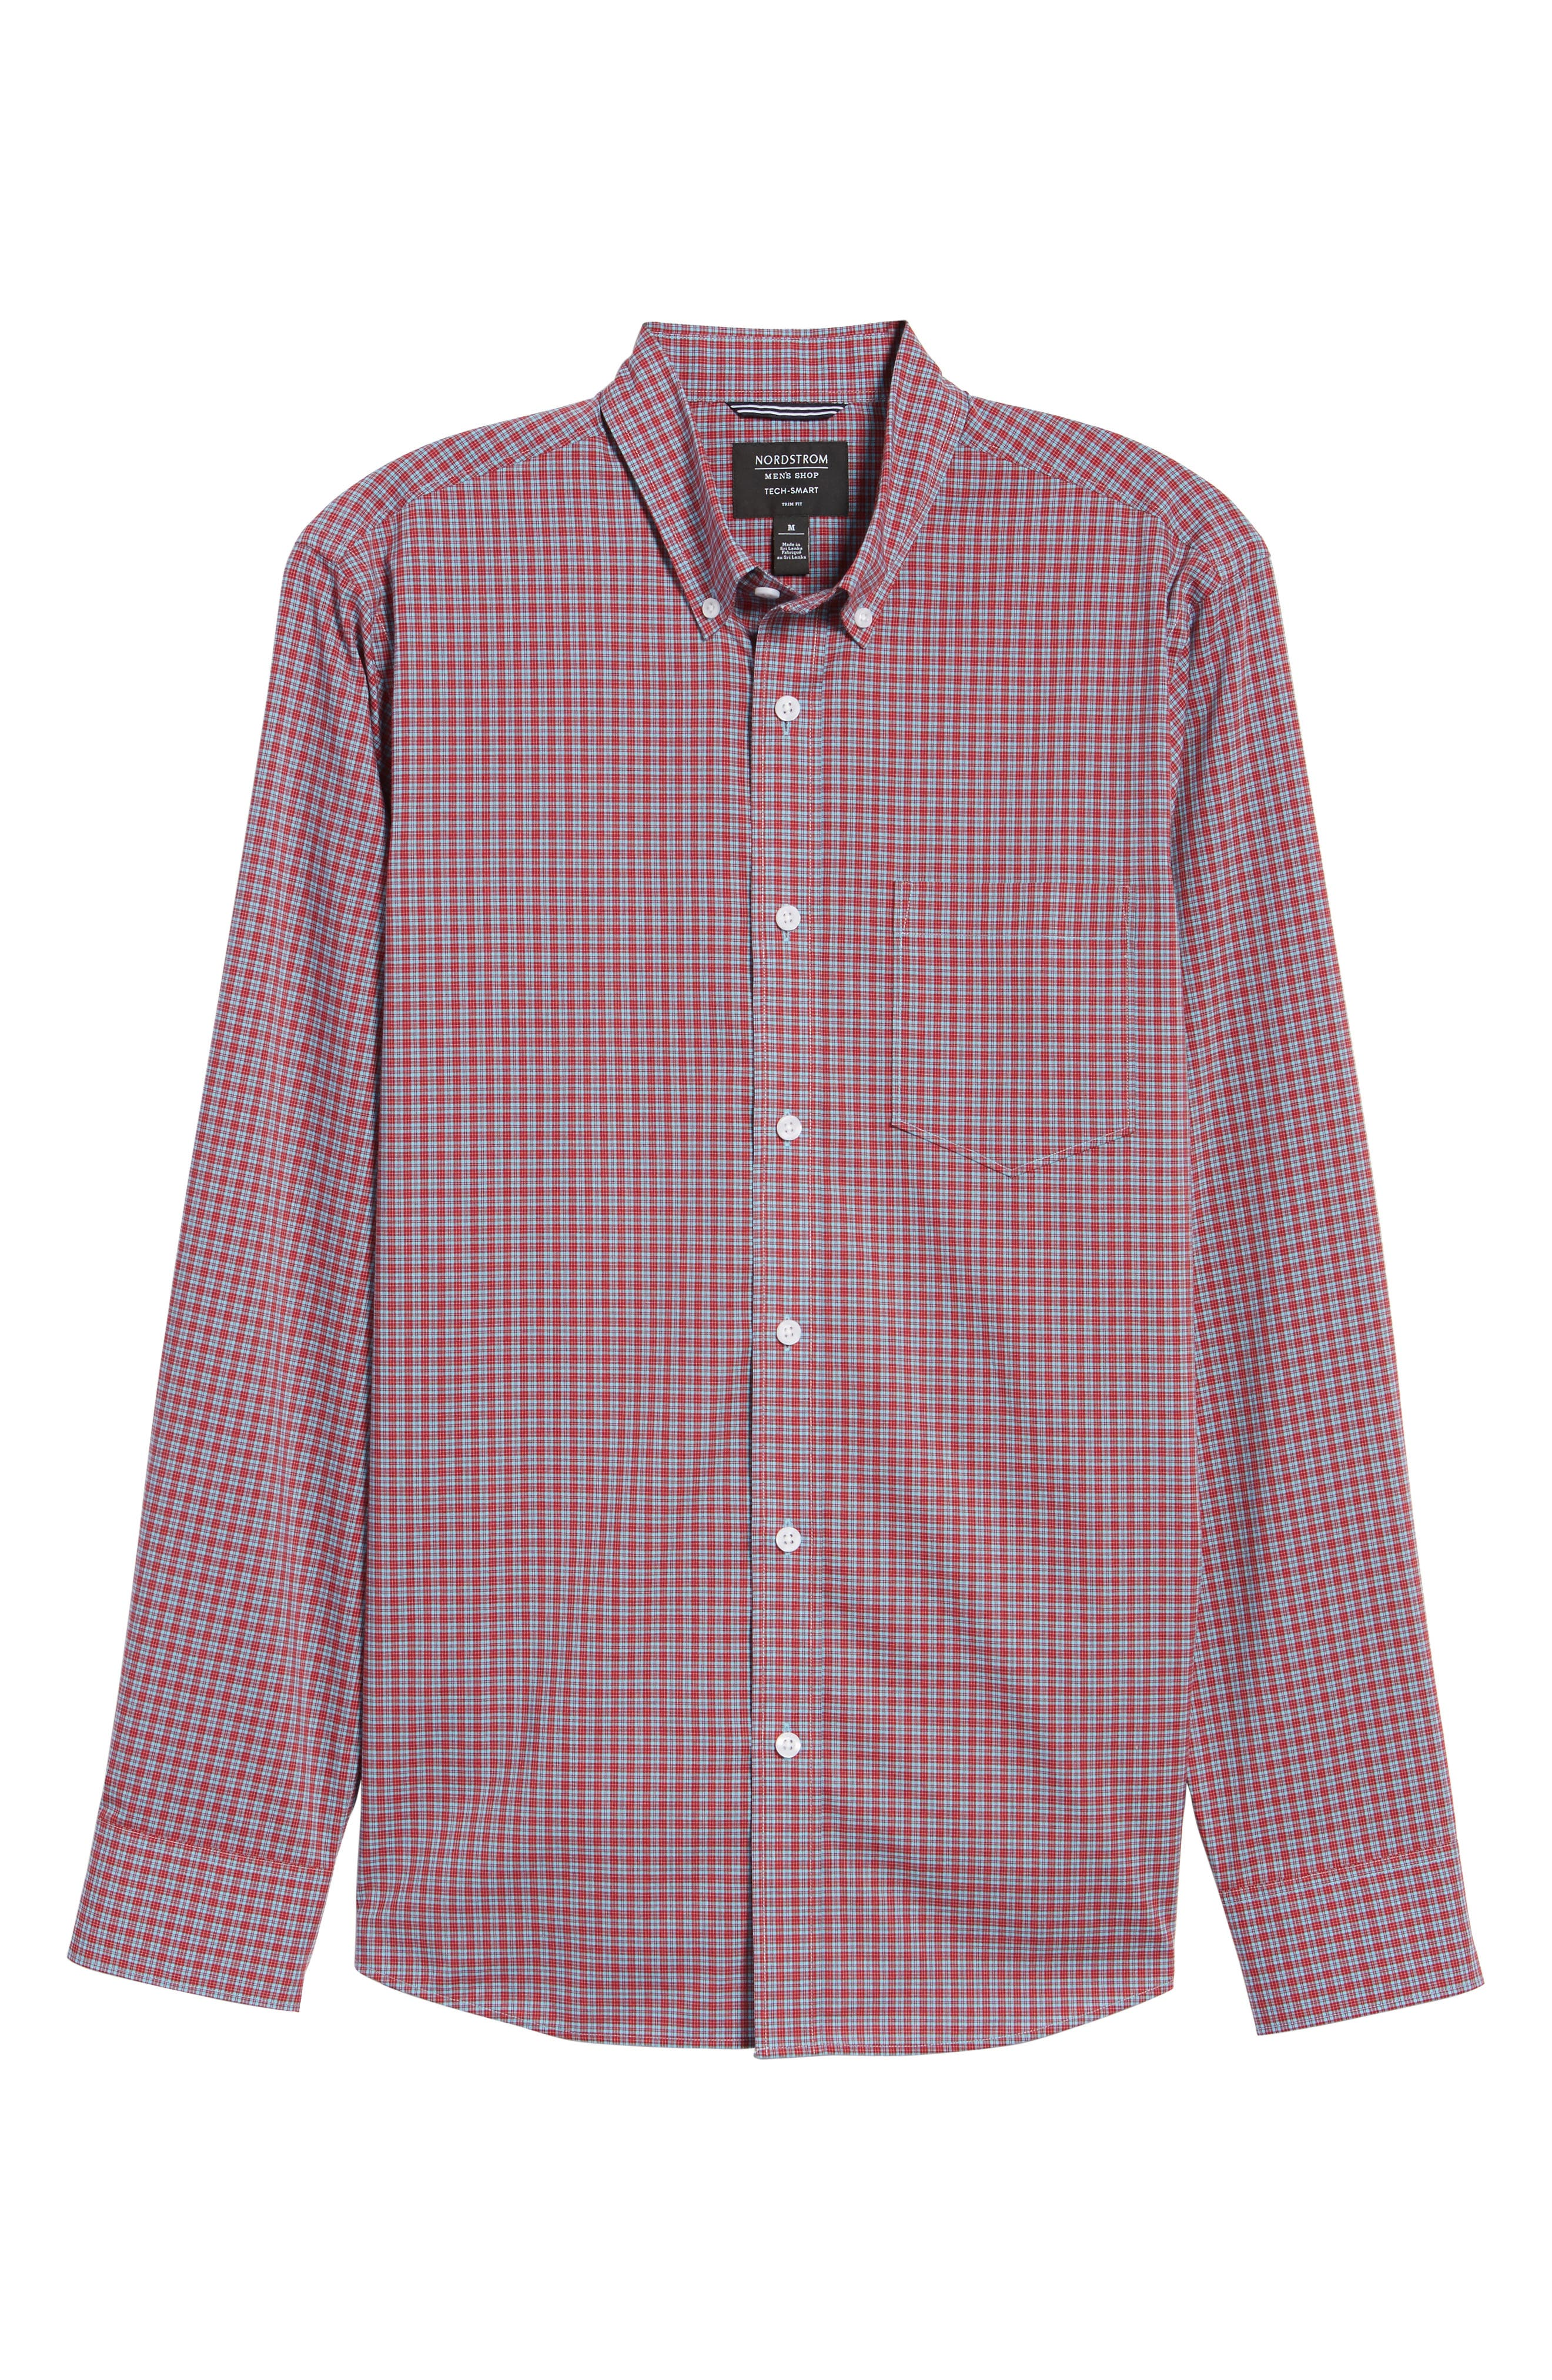 Tech-Smart Trim Fit Check Sport Shirt,                             Alternate thumbnail 6, color,                             Red Pompeii Blue Micro Check